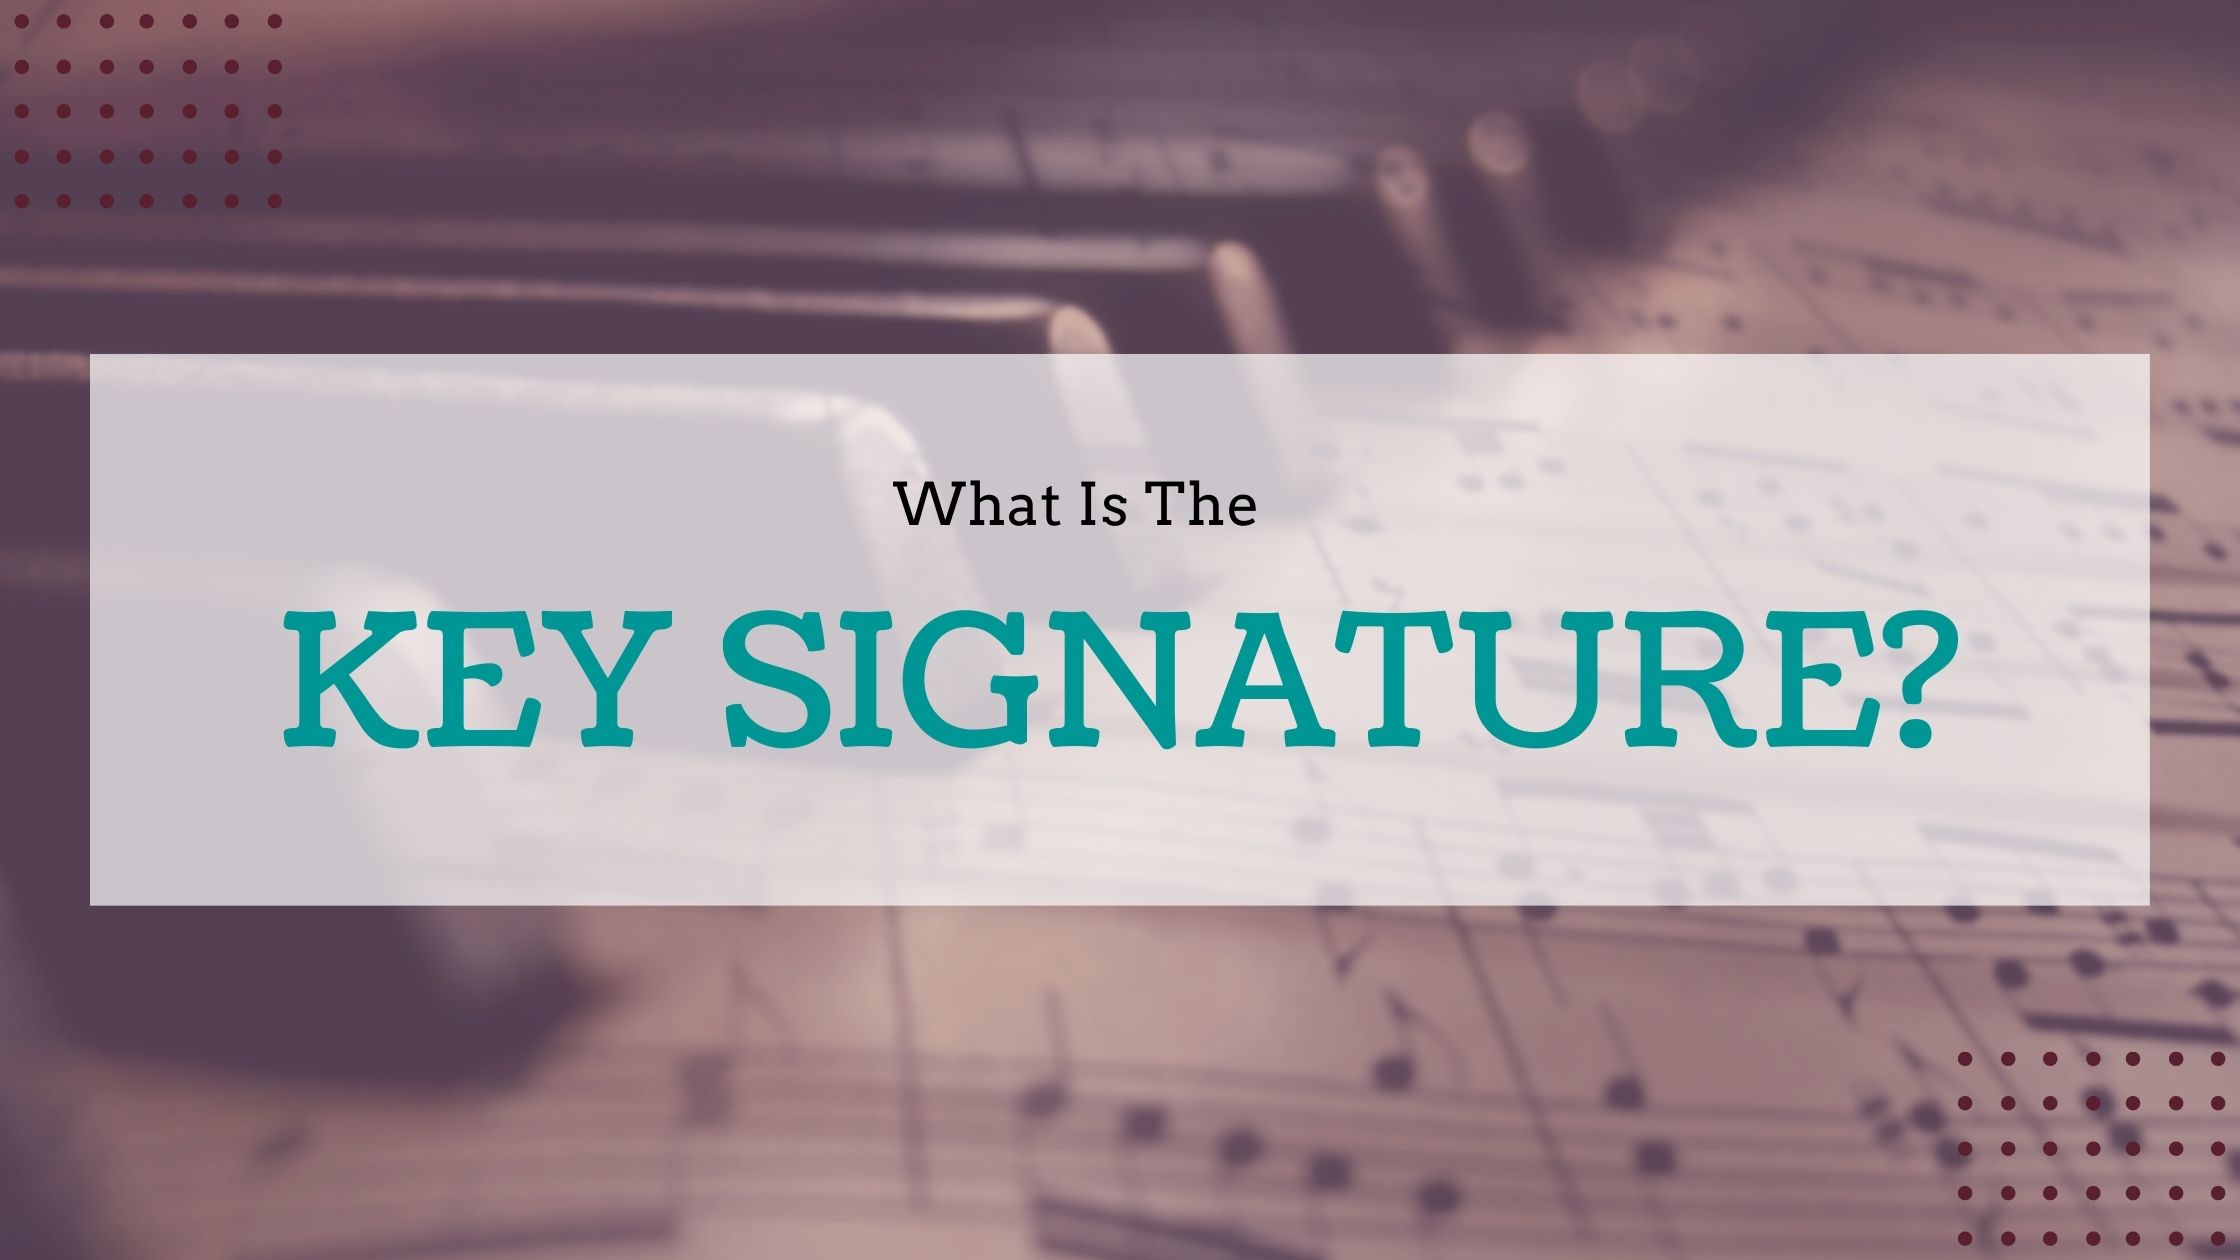 What Is The Key Signature?